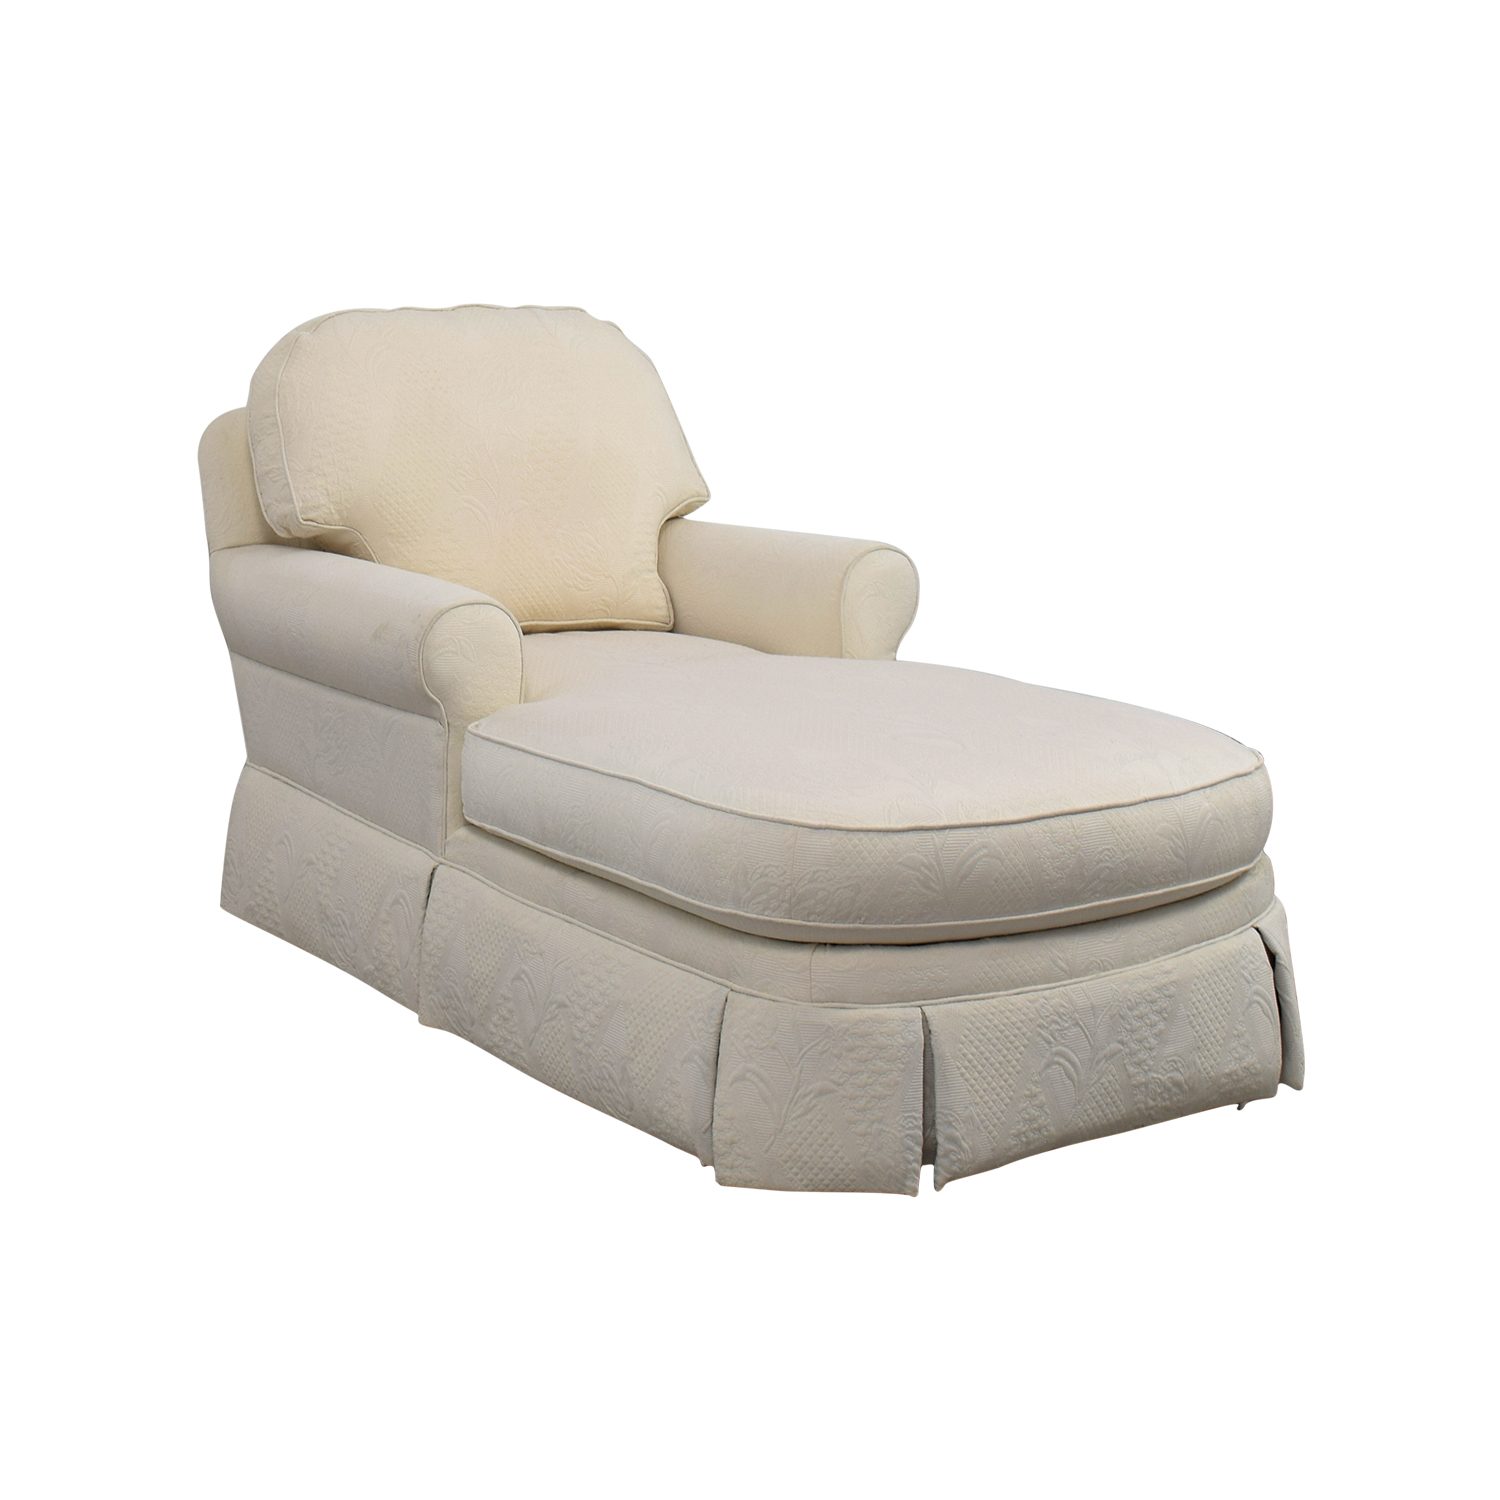 ... used; Ethan Allen Victoria White Chaise Lounge Ethan Allen ...  sc 1 st  Furnishare : second hand chaise lounge - Sectionals, Sofas & Couches